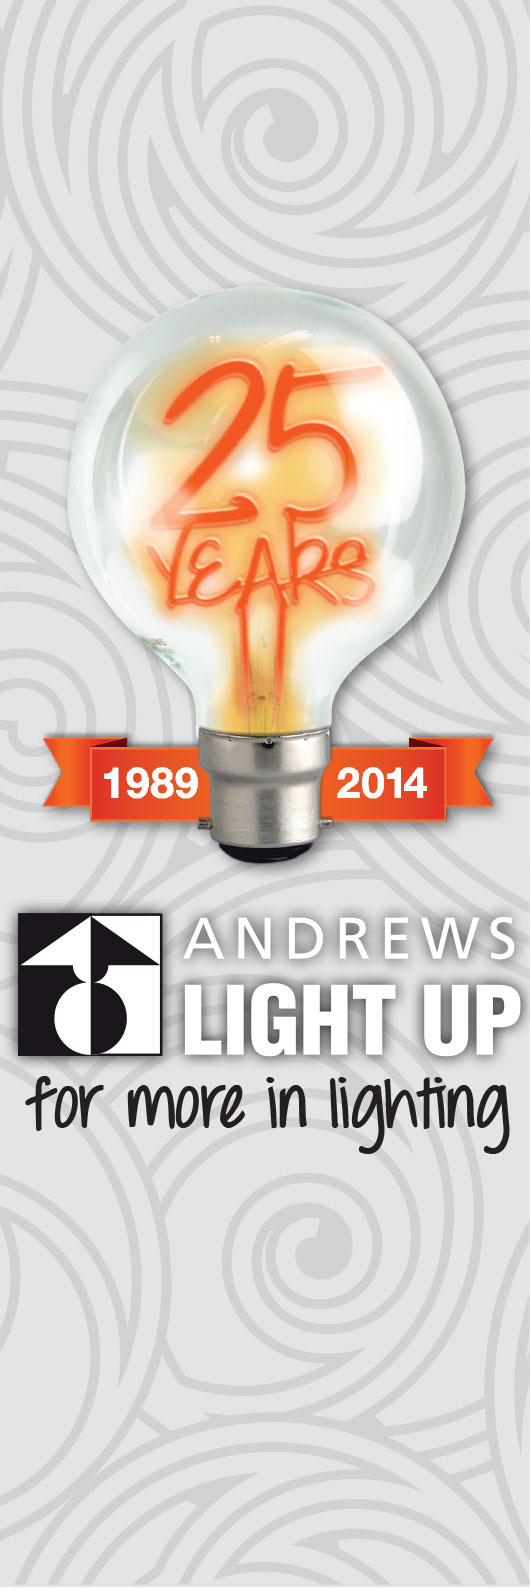 andrews light up maroochydore lighting stores the zone